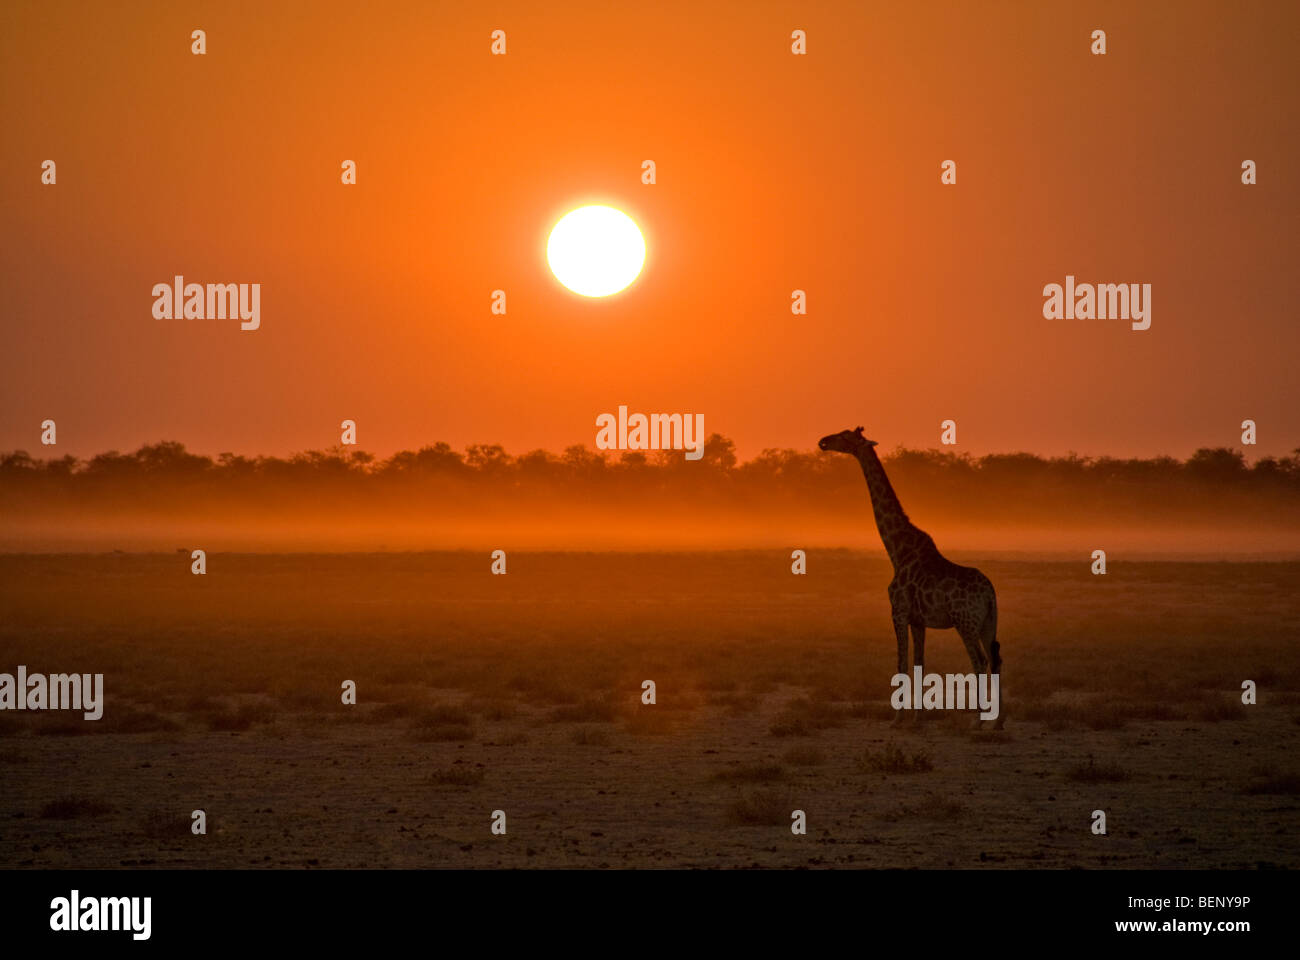 Silhouette of a giraffe at sunset in Etosha National Park, Namibia, Africa. - Stock Image